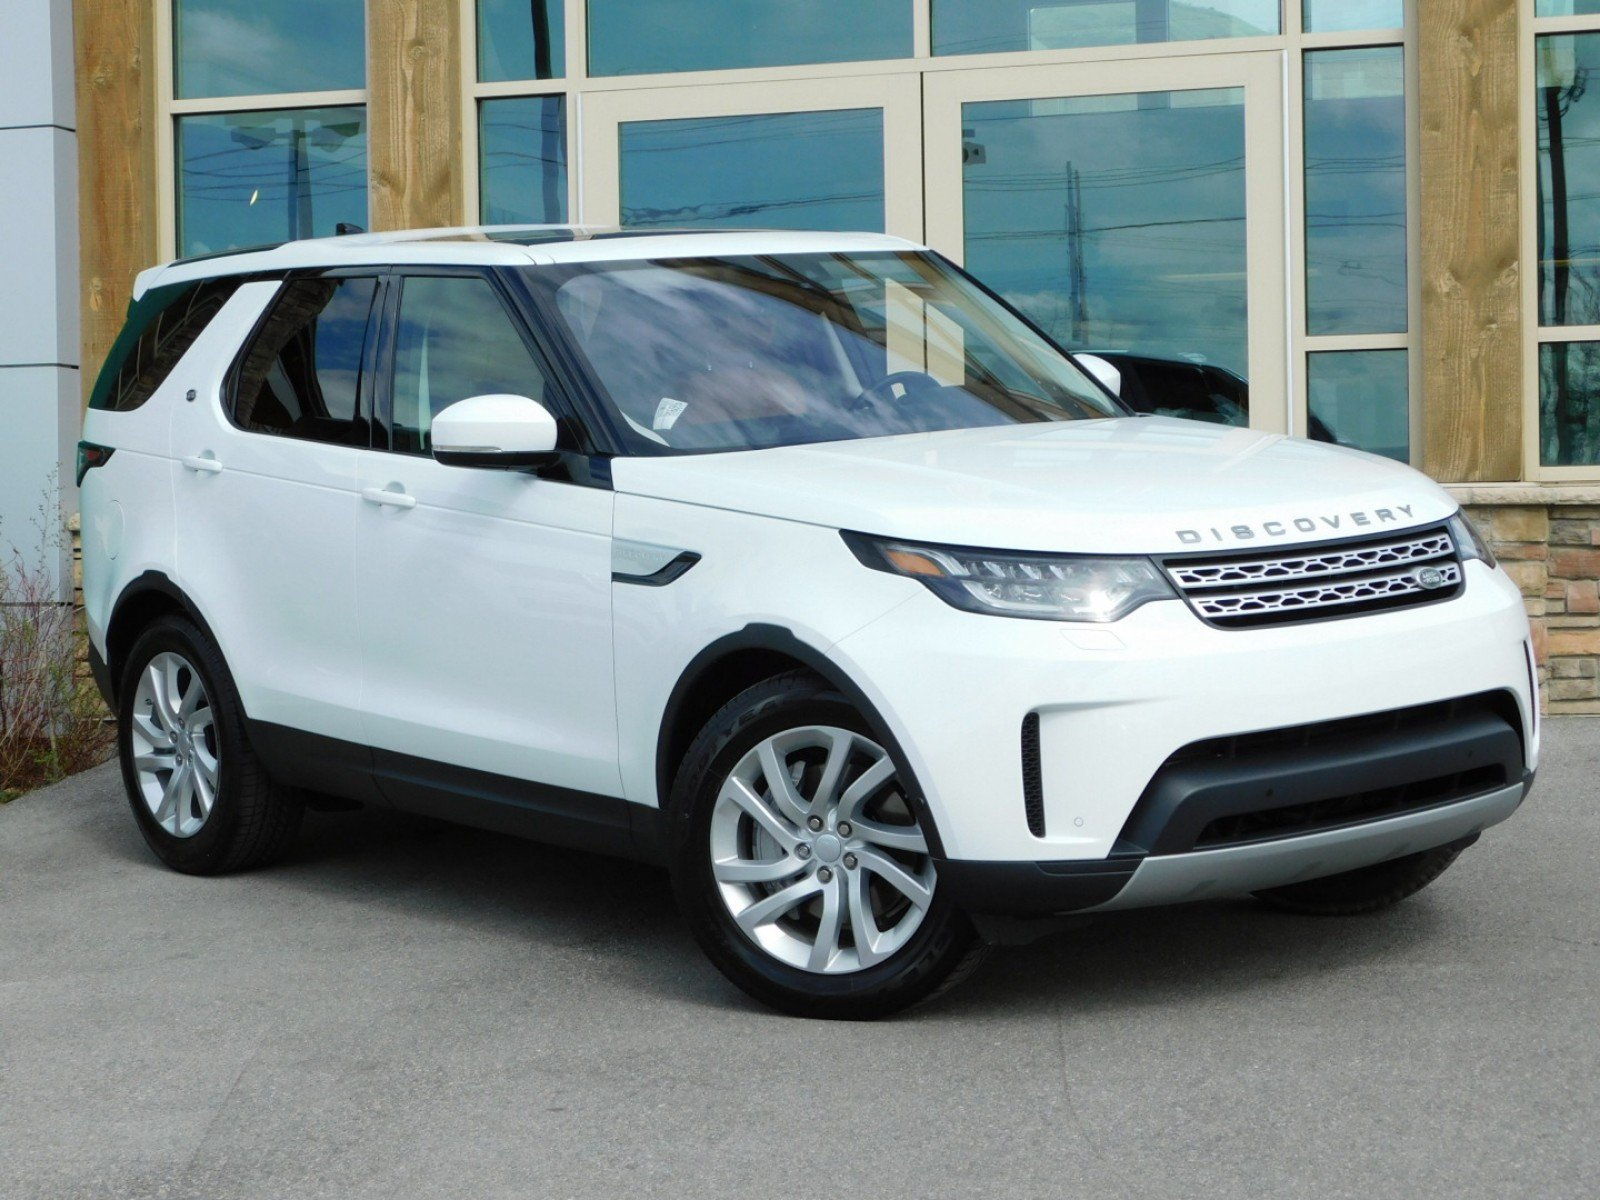 Discovery Land Rover >> Certified Pre Owned Land Rover Discovery Hse With Navigation 4wd